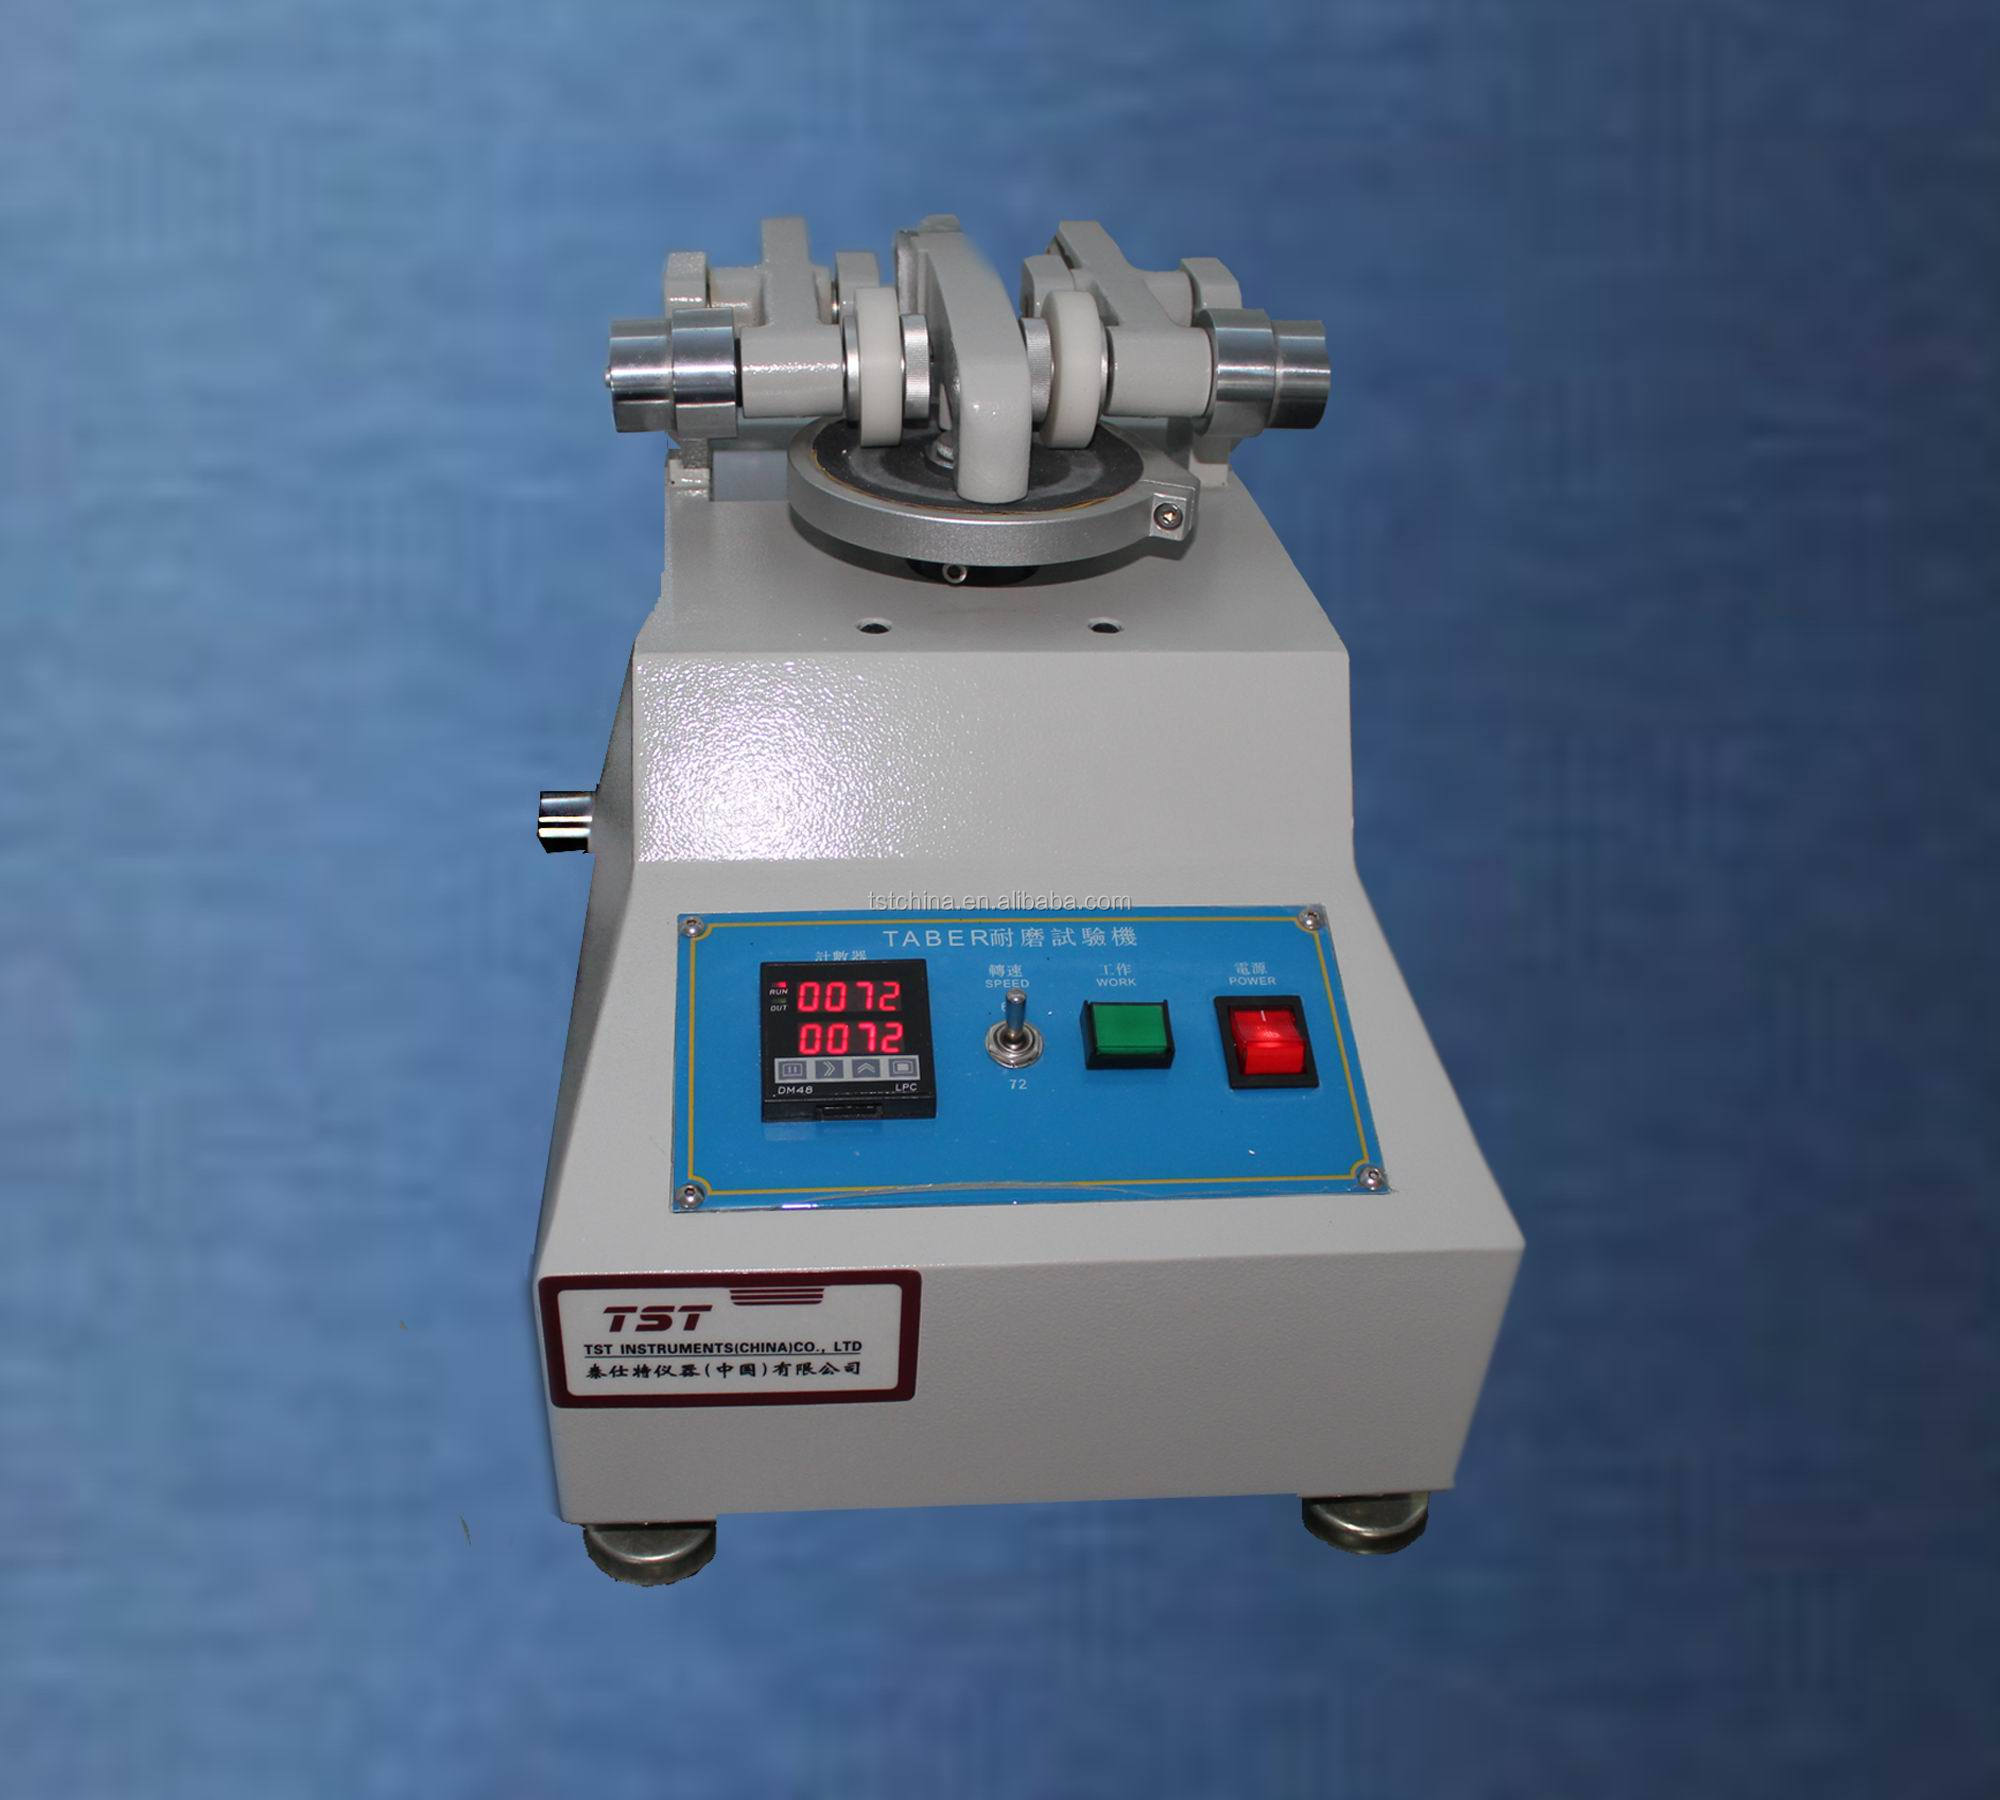 ISO5470 Taber wear abrasion tester(rotary platform)-Taber abrader